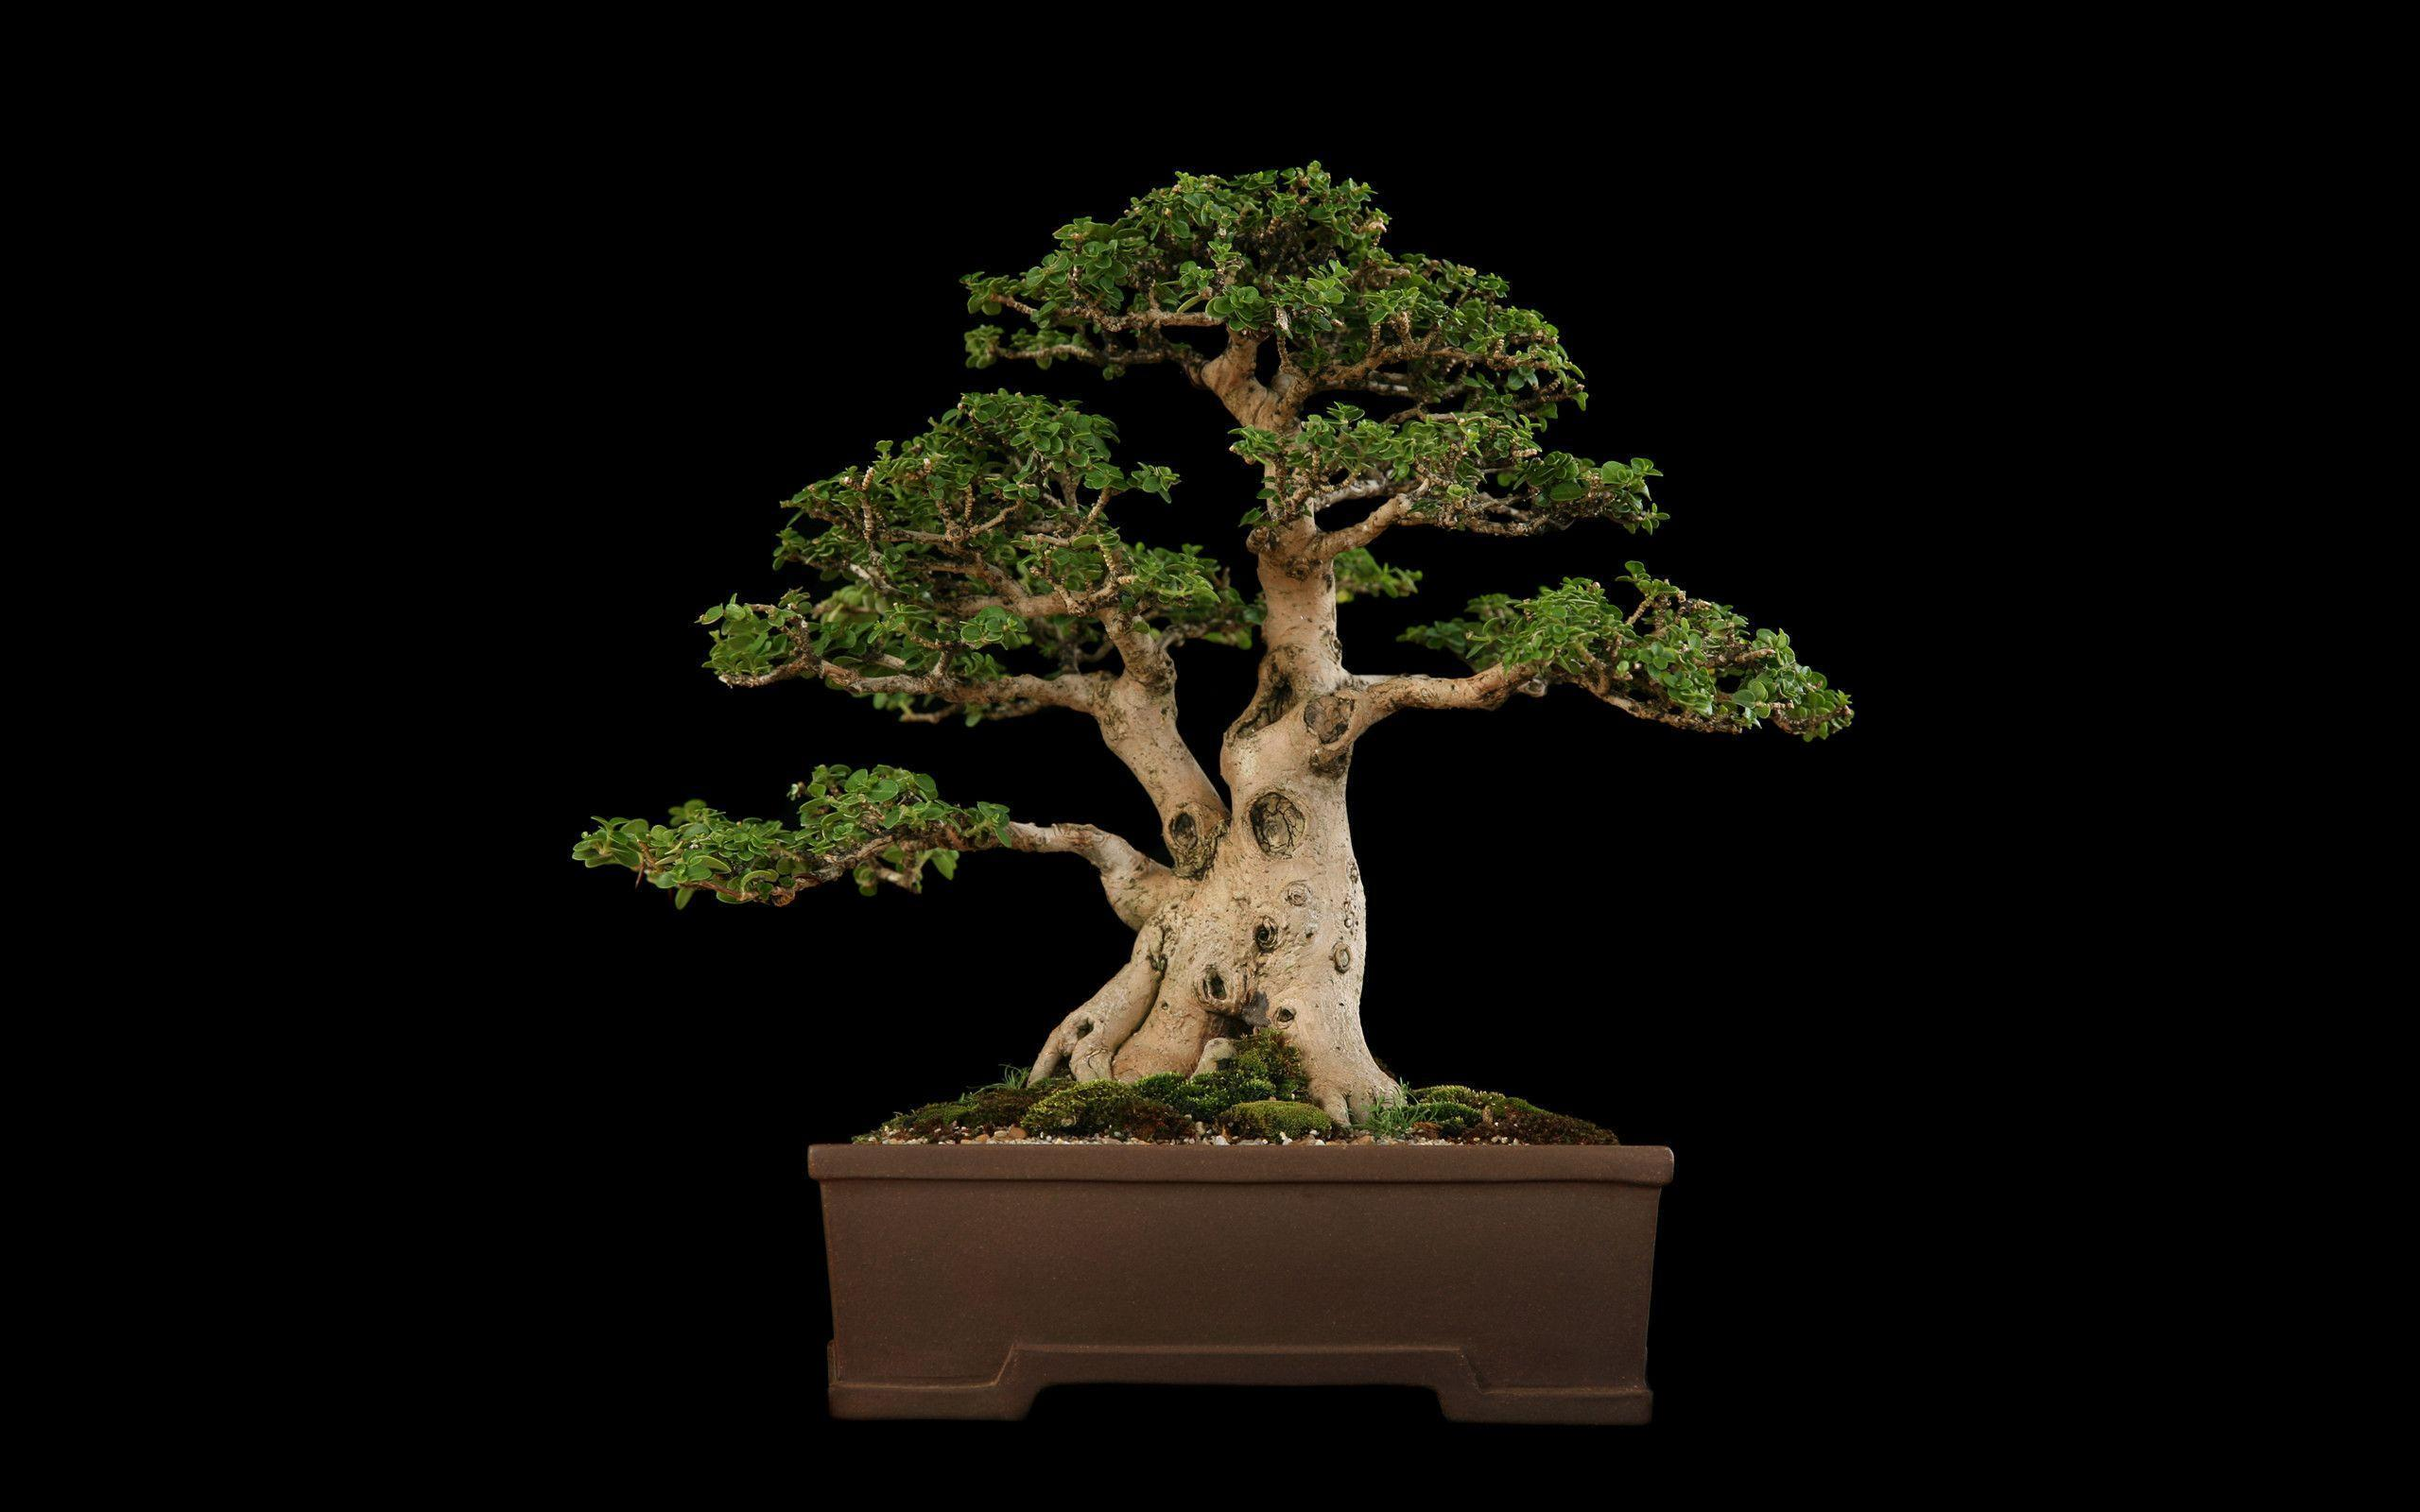 Tree Bonsai Tree Black f wallpaper | 2560x1600 | 67866 | WallpaperUP